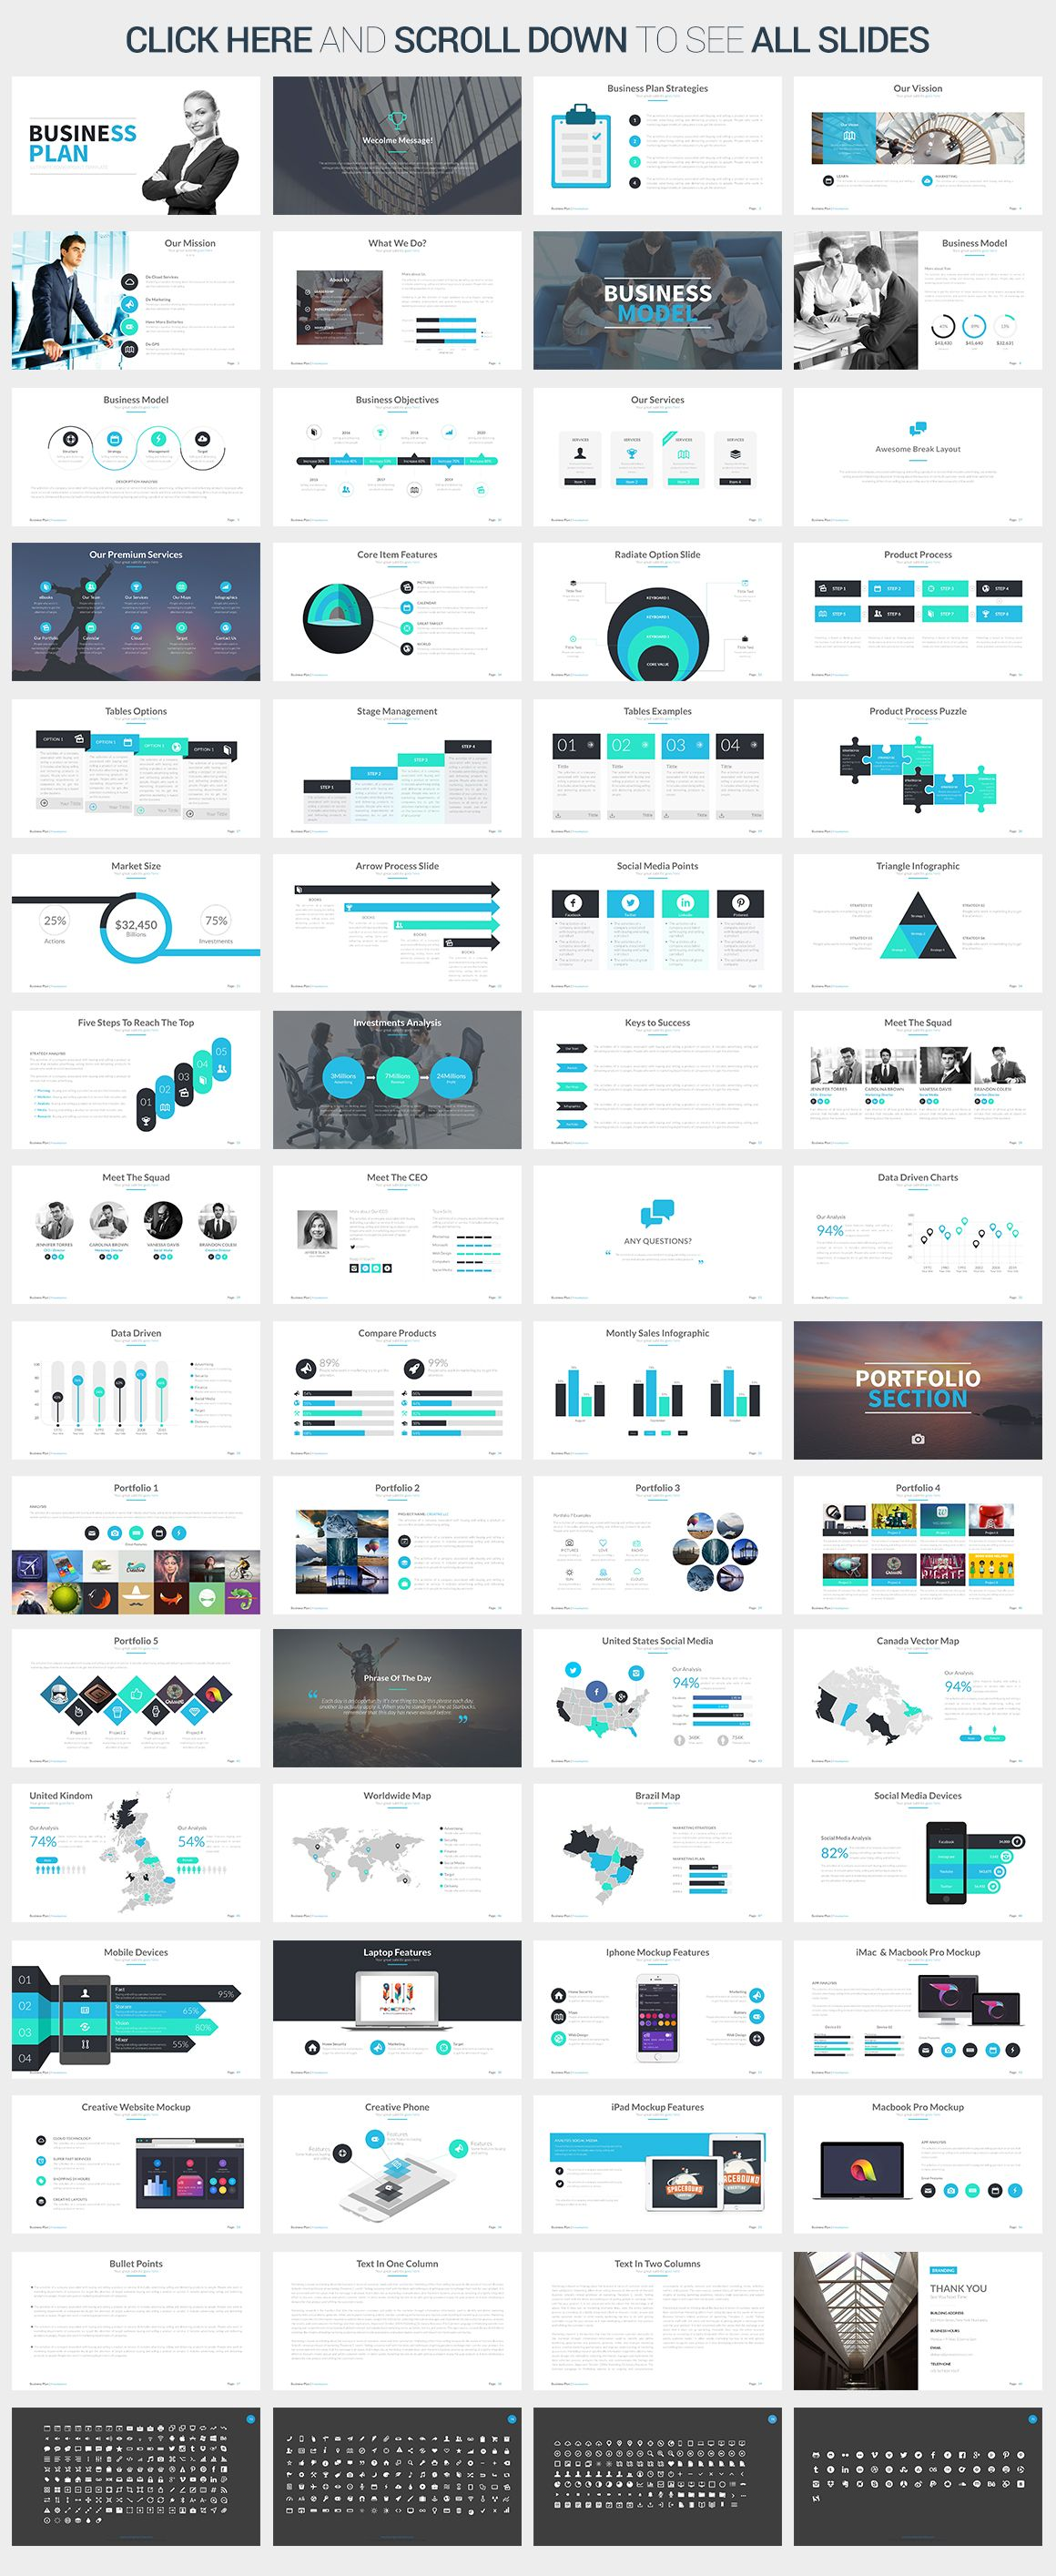 Business plan powerpoint template apresentao infografico e eleio business plan powerpoint template by slidepro on creativemarket toneelgroepblik Choice Image